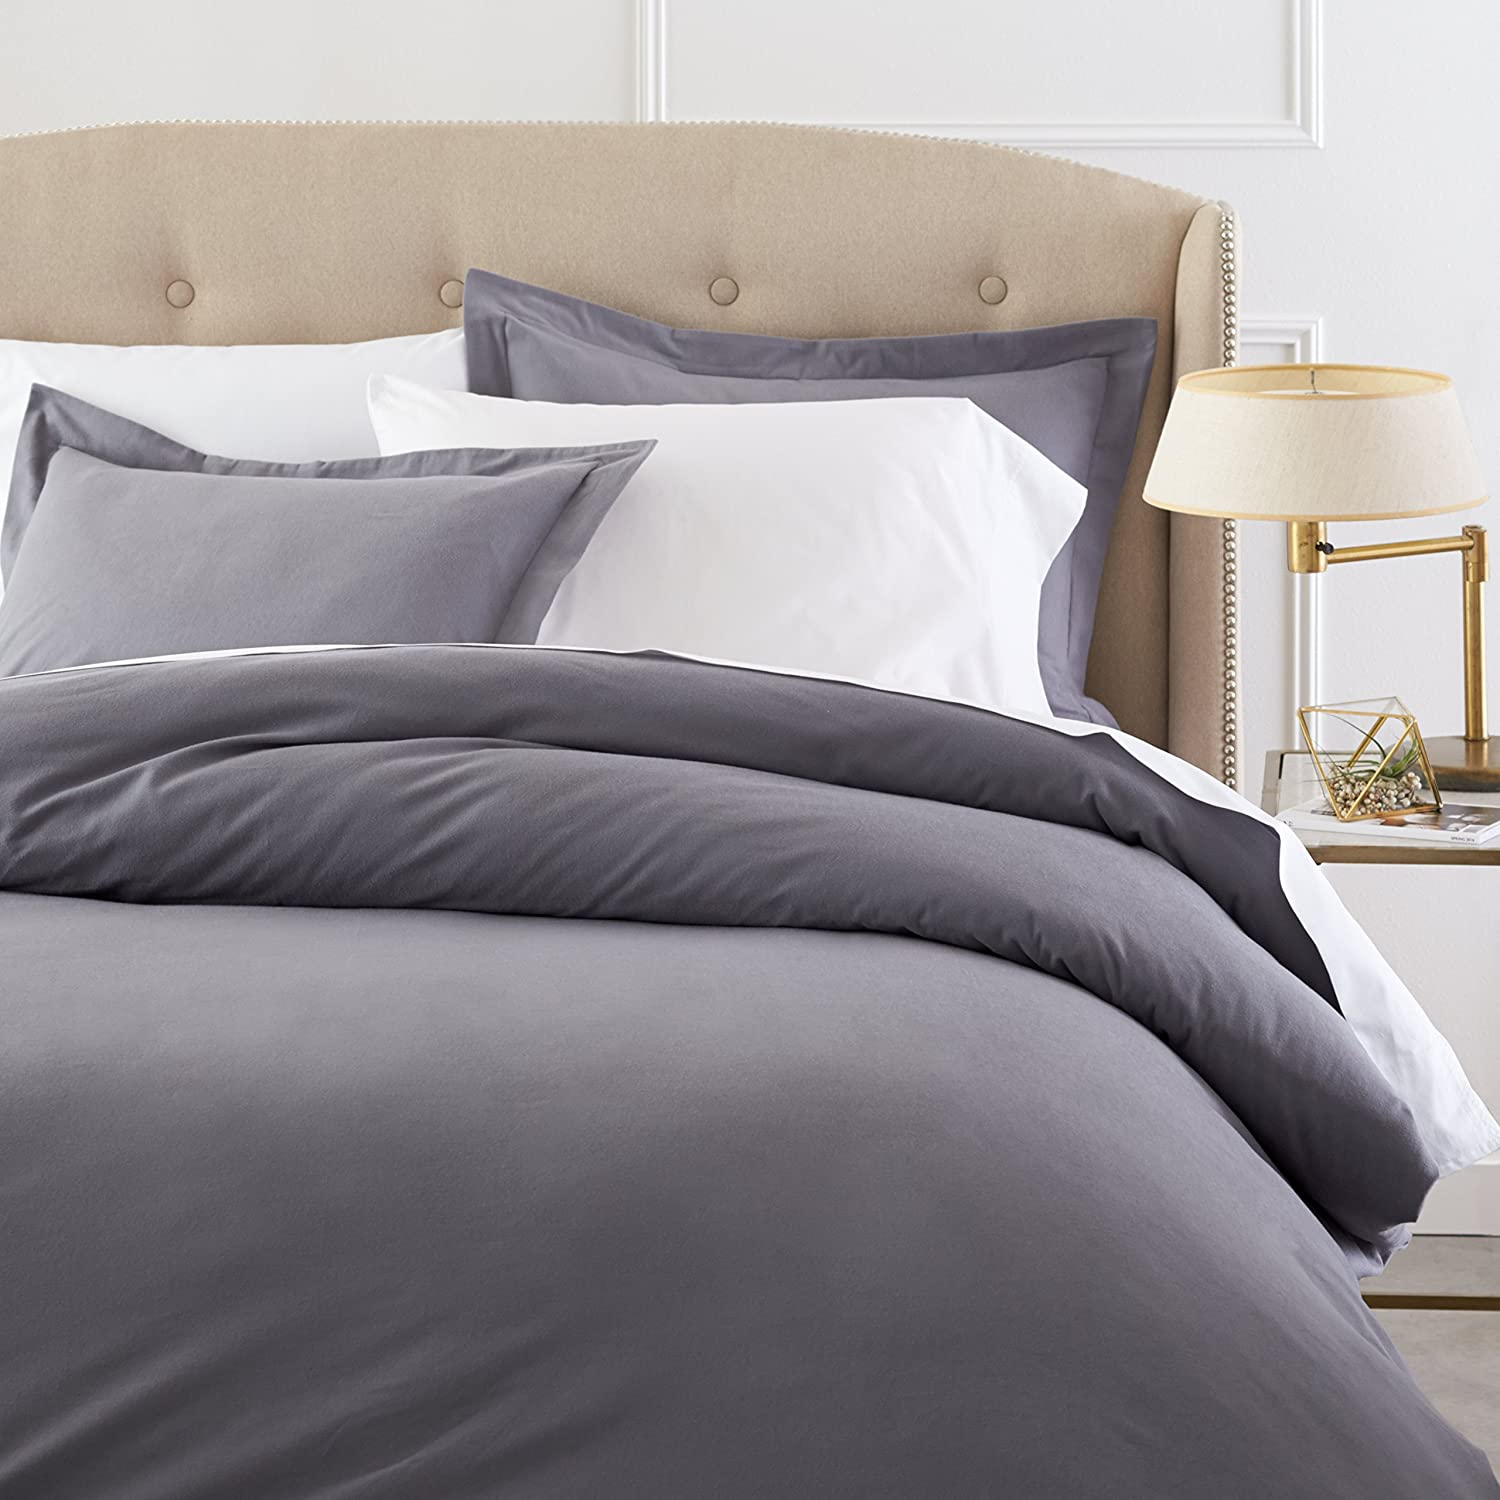 Cheap And Best Grey Comforters Ease Bedding With Style